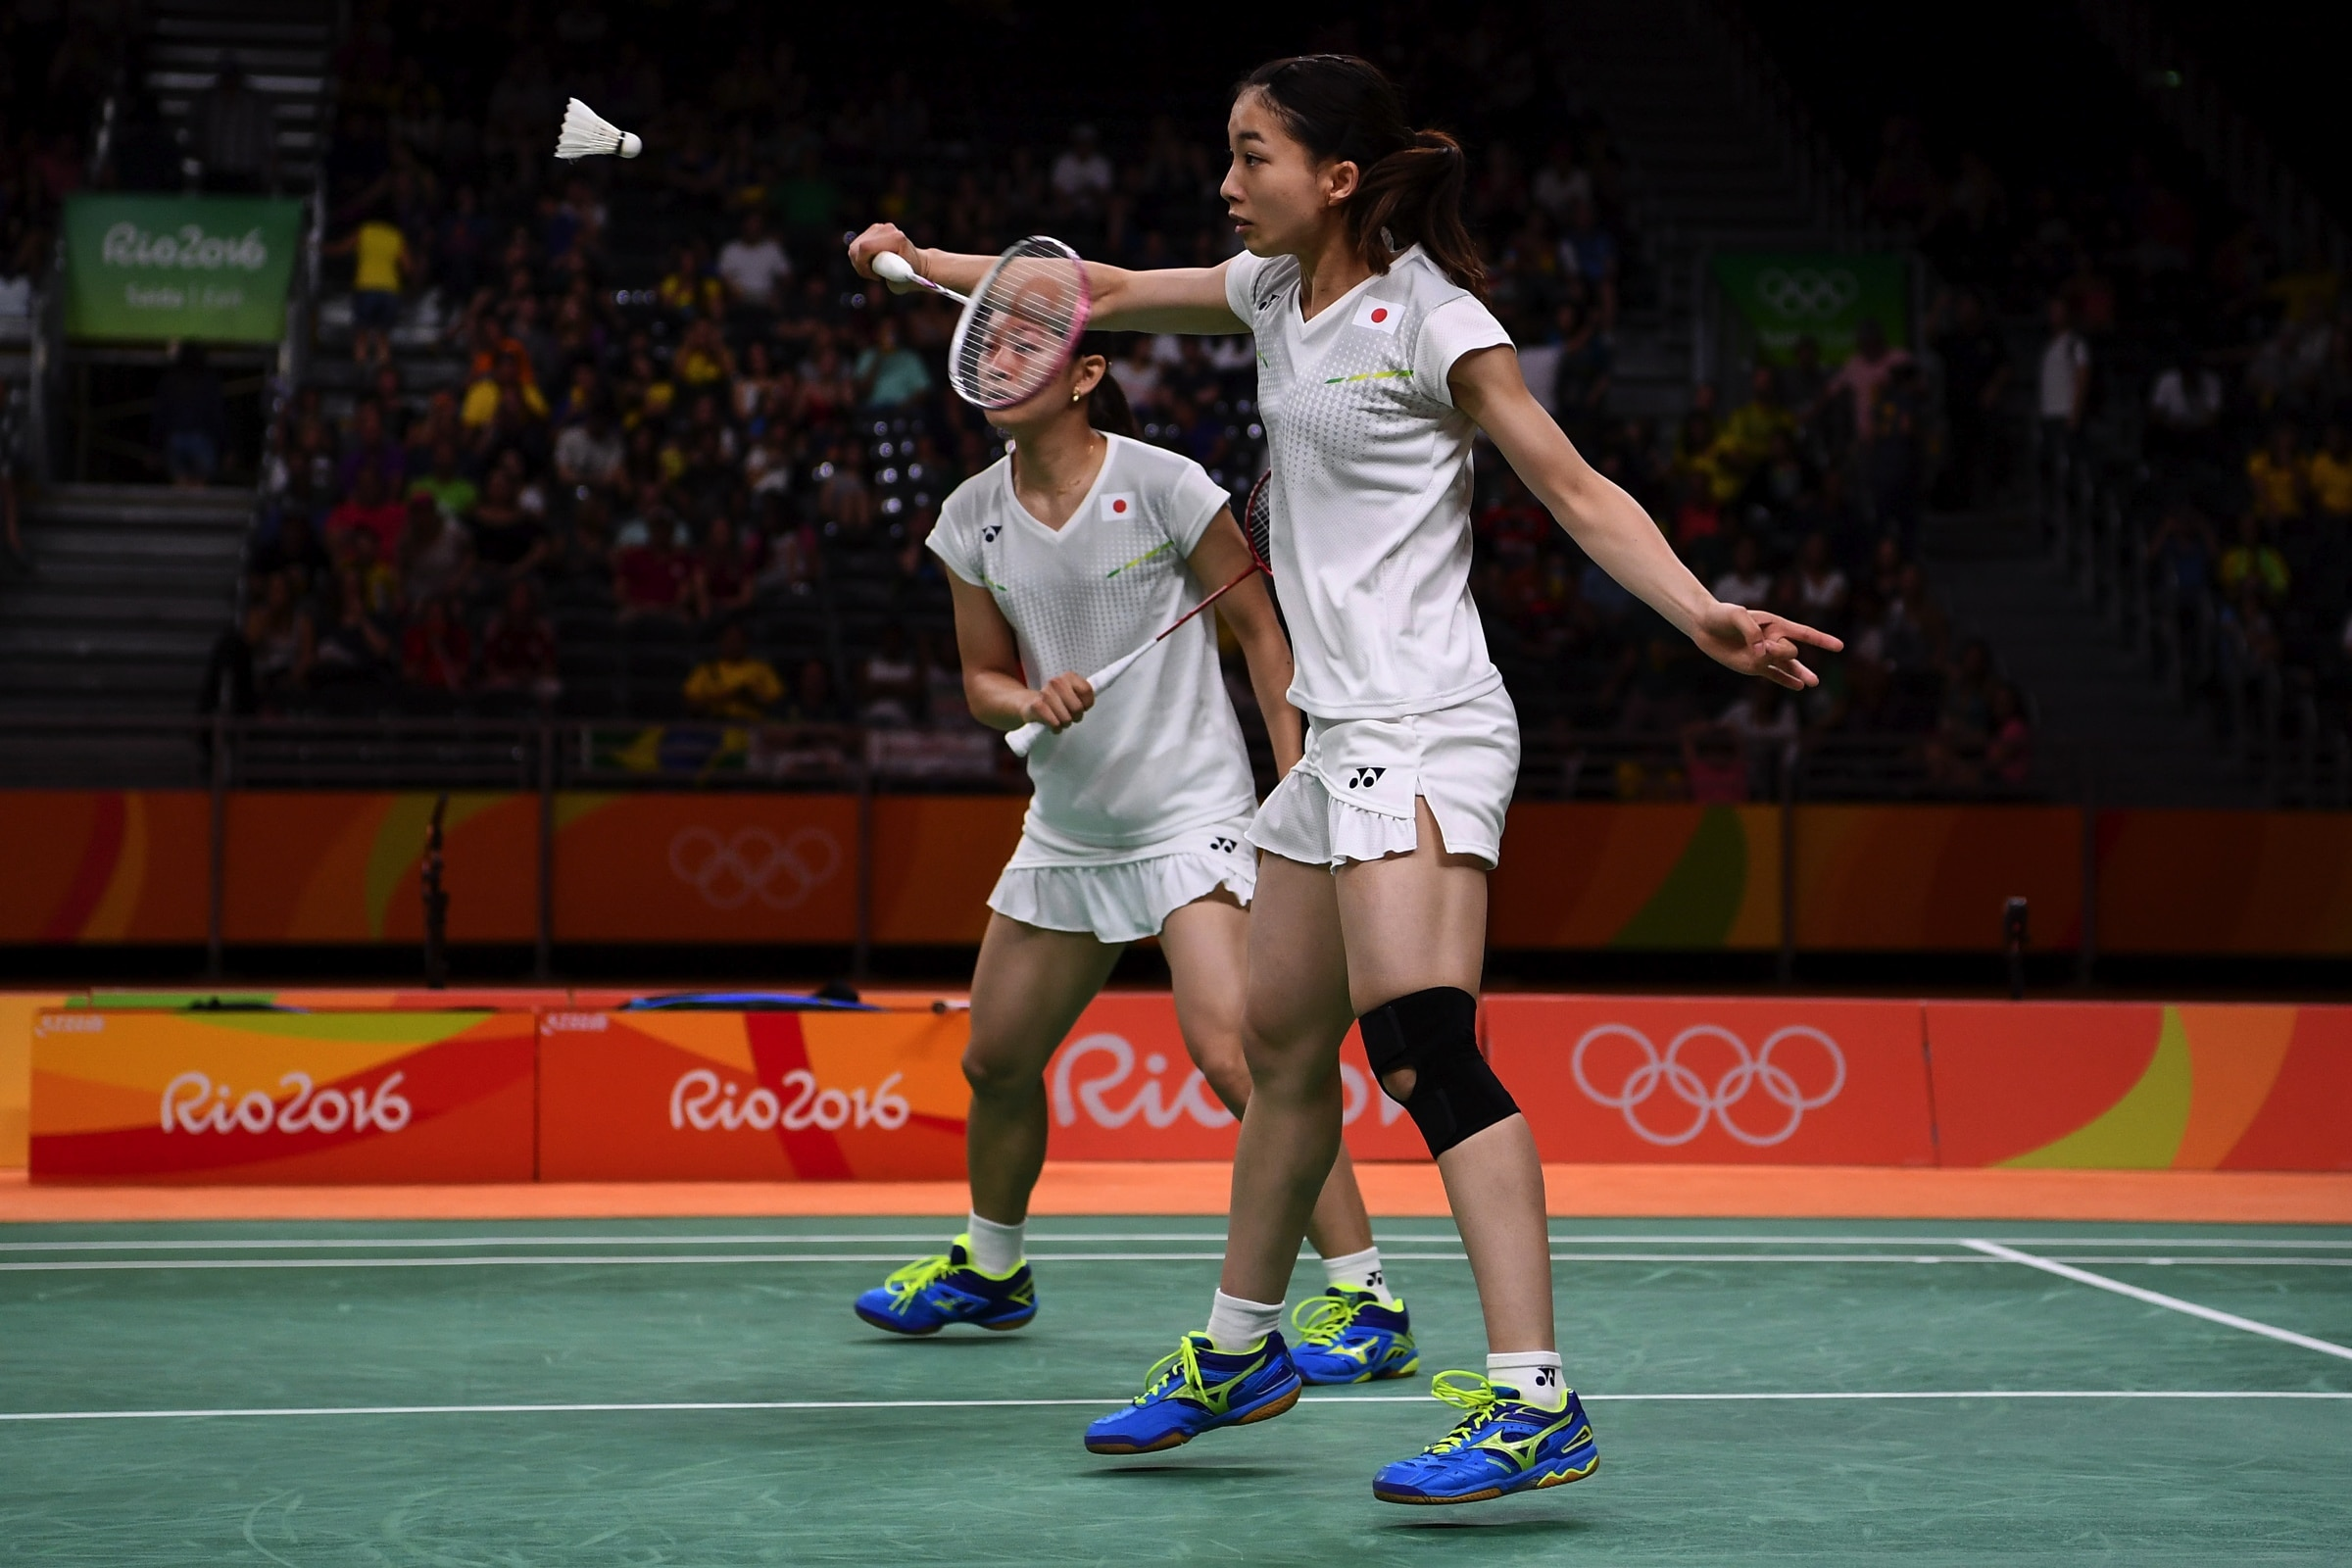 Badminton - Doubles Women